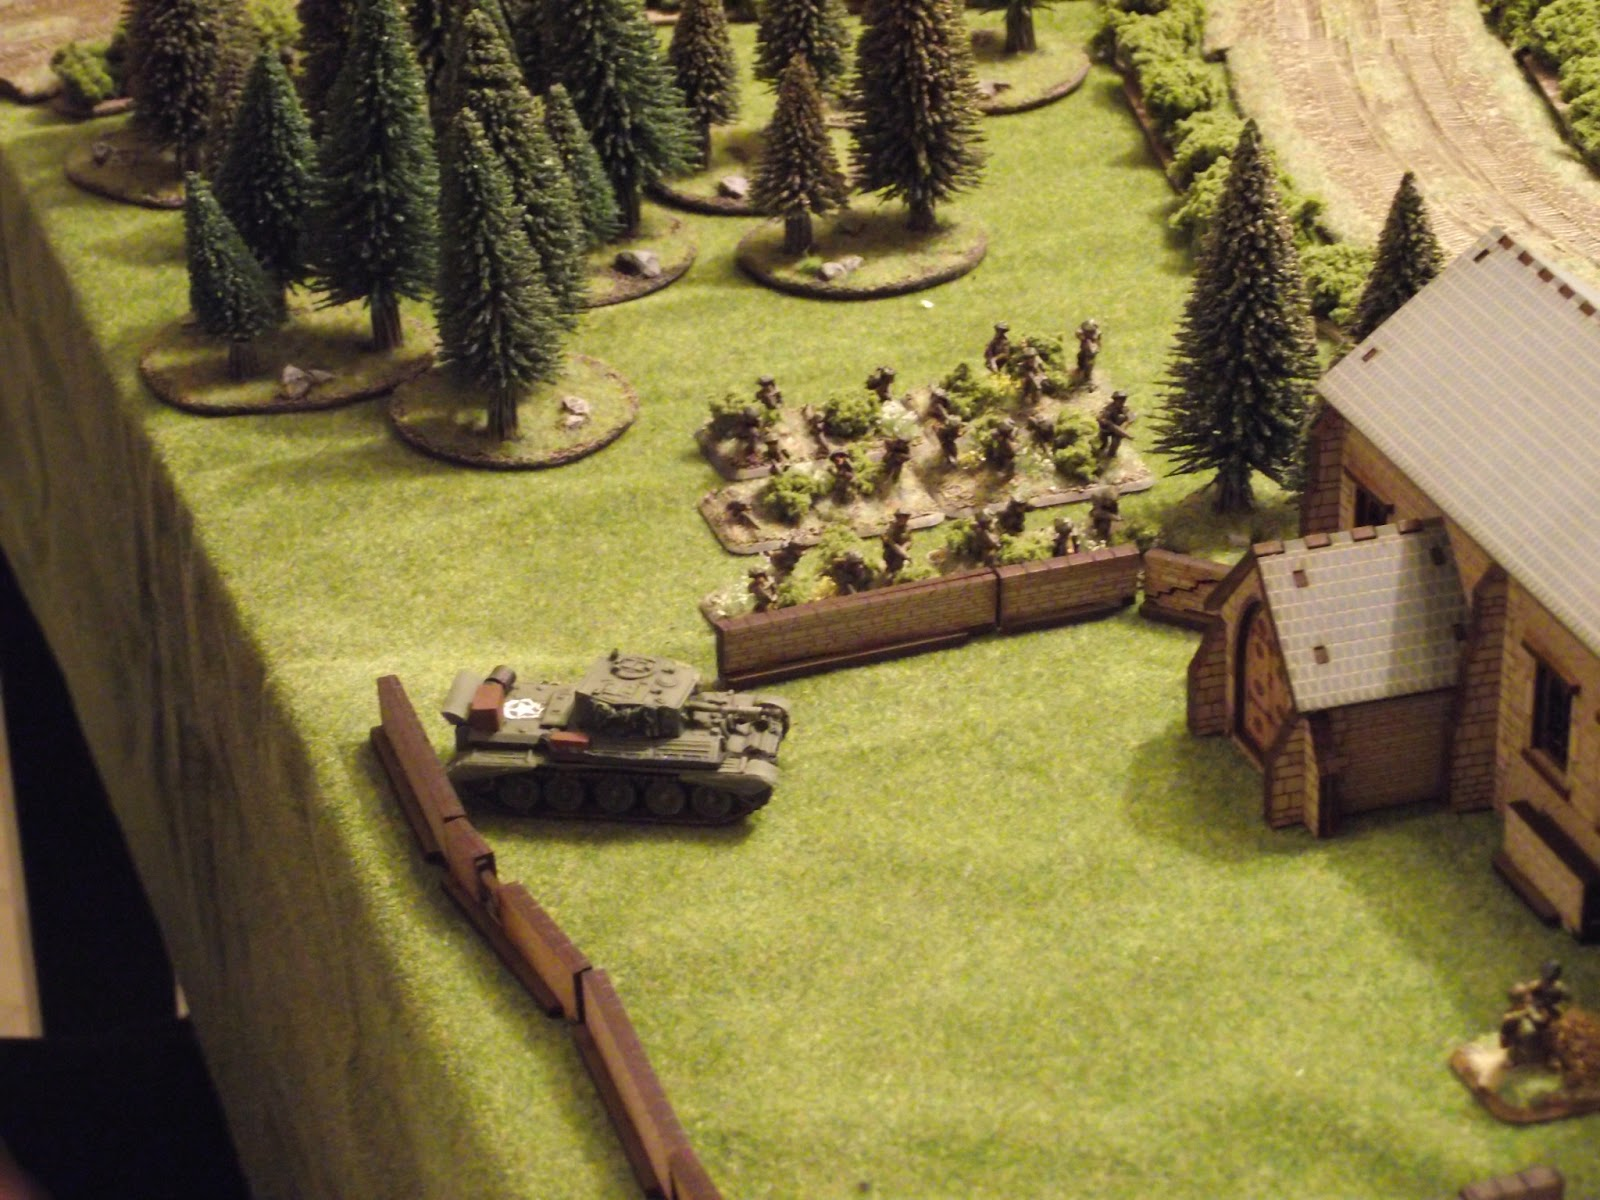 David starts to gather his platoon for an all out assault.